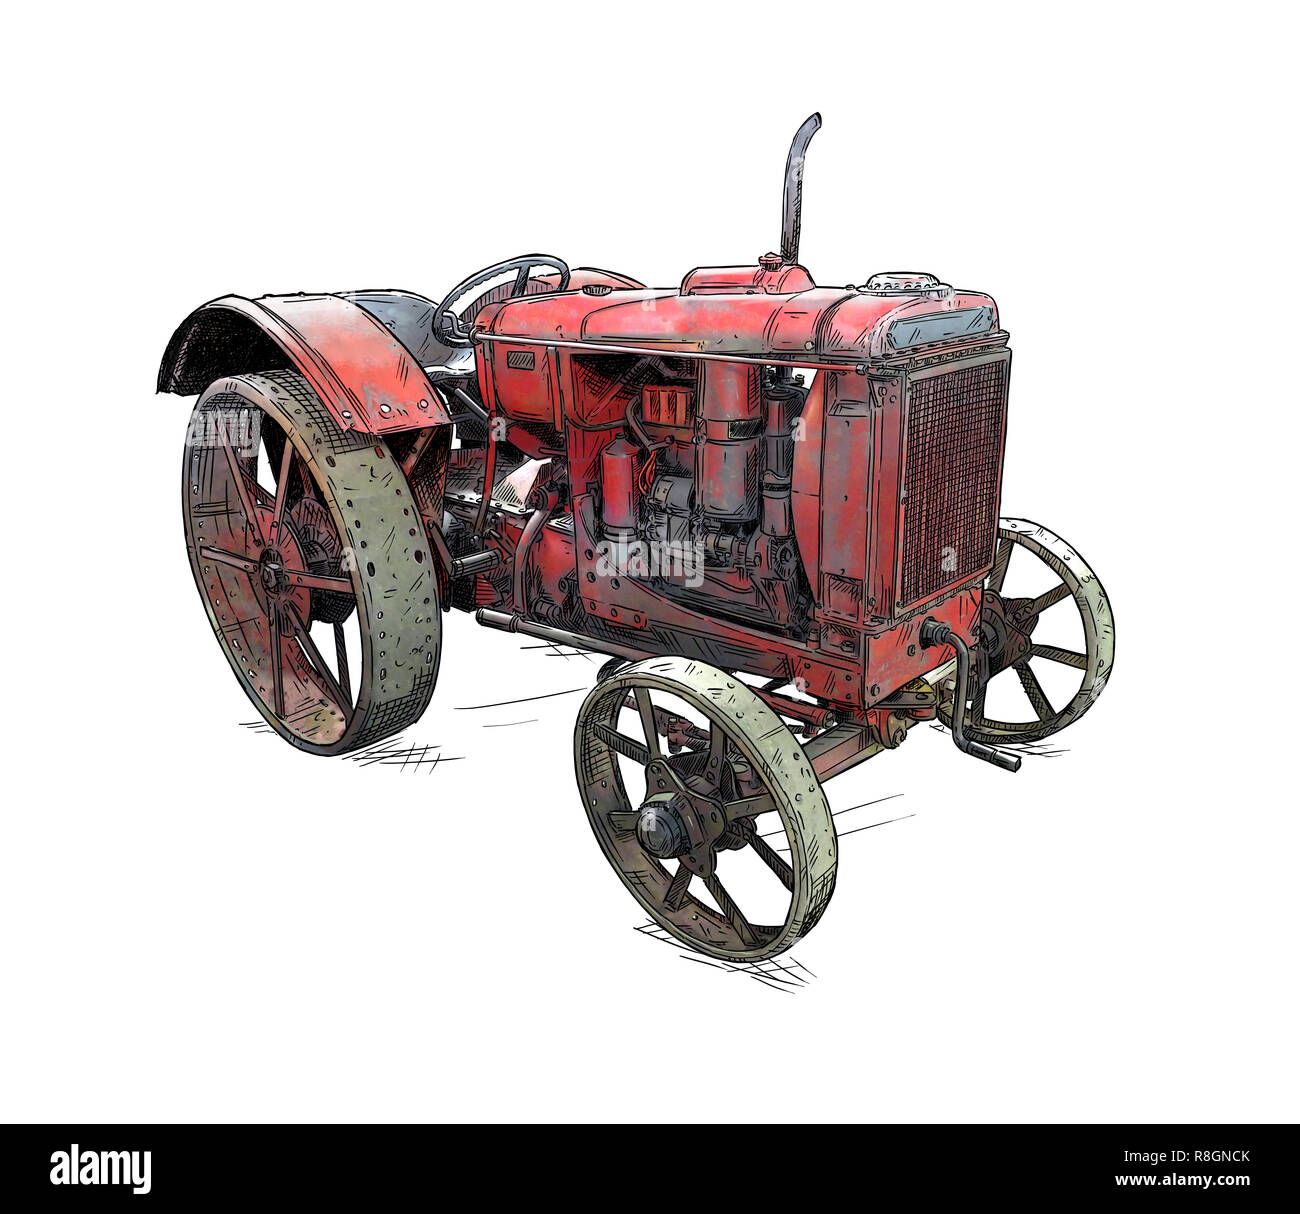 Cartoon or Comic Style Illustration of Old or Vintage Red Tractor - Stock Image